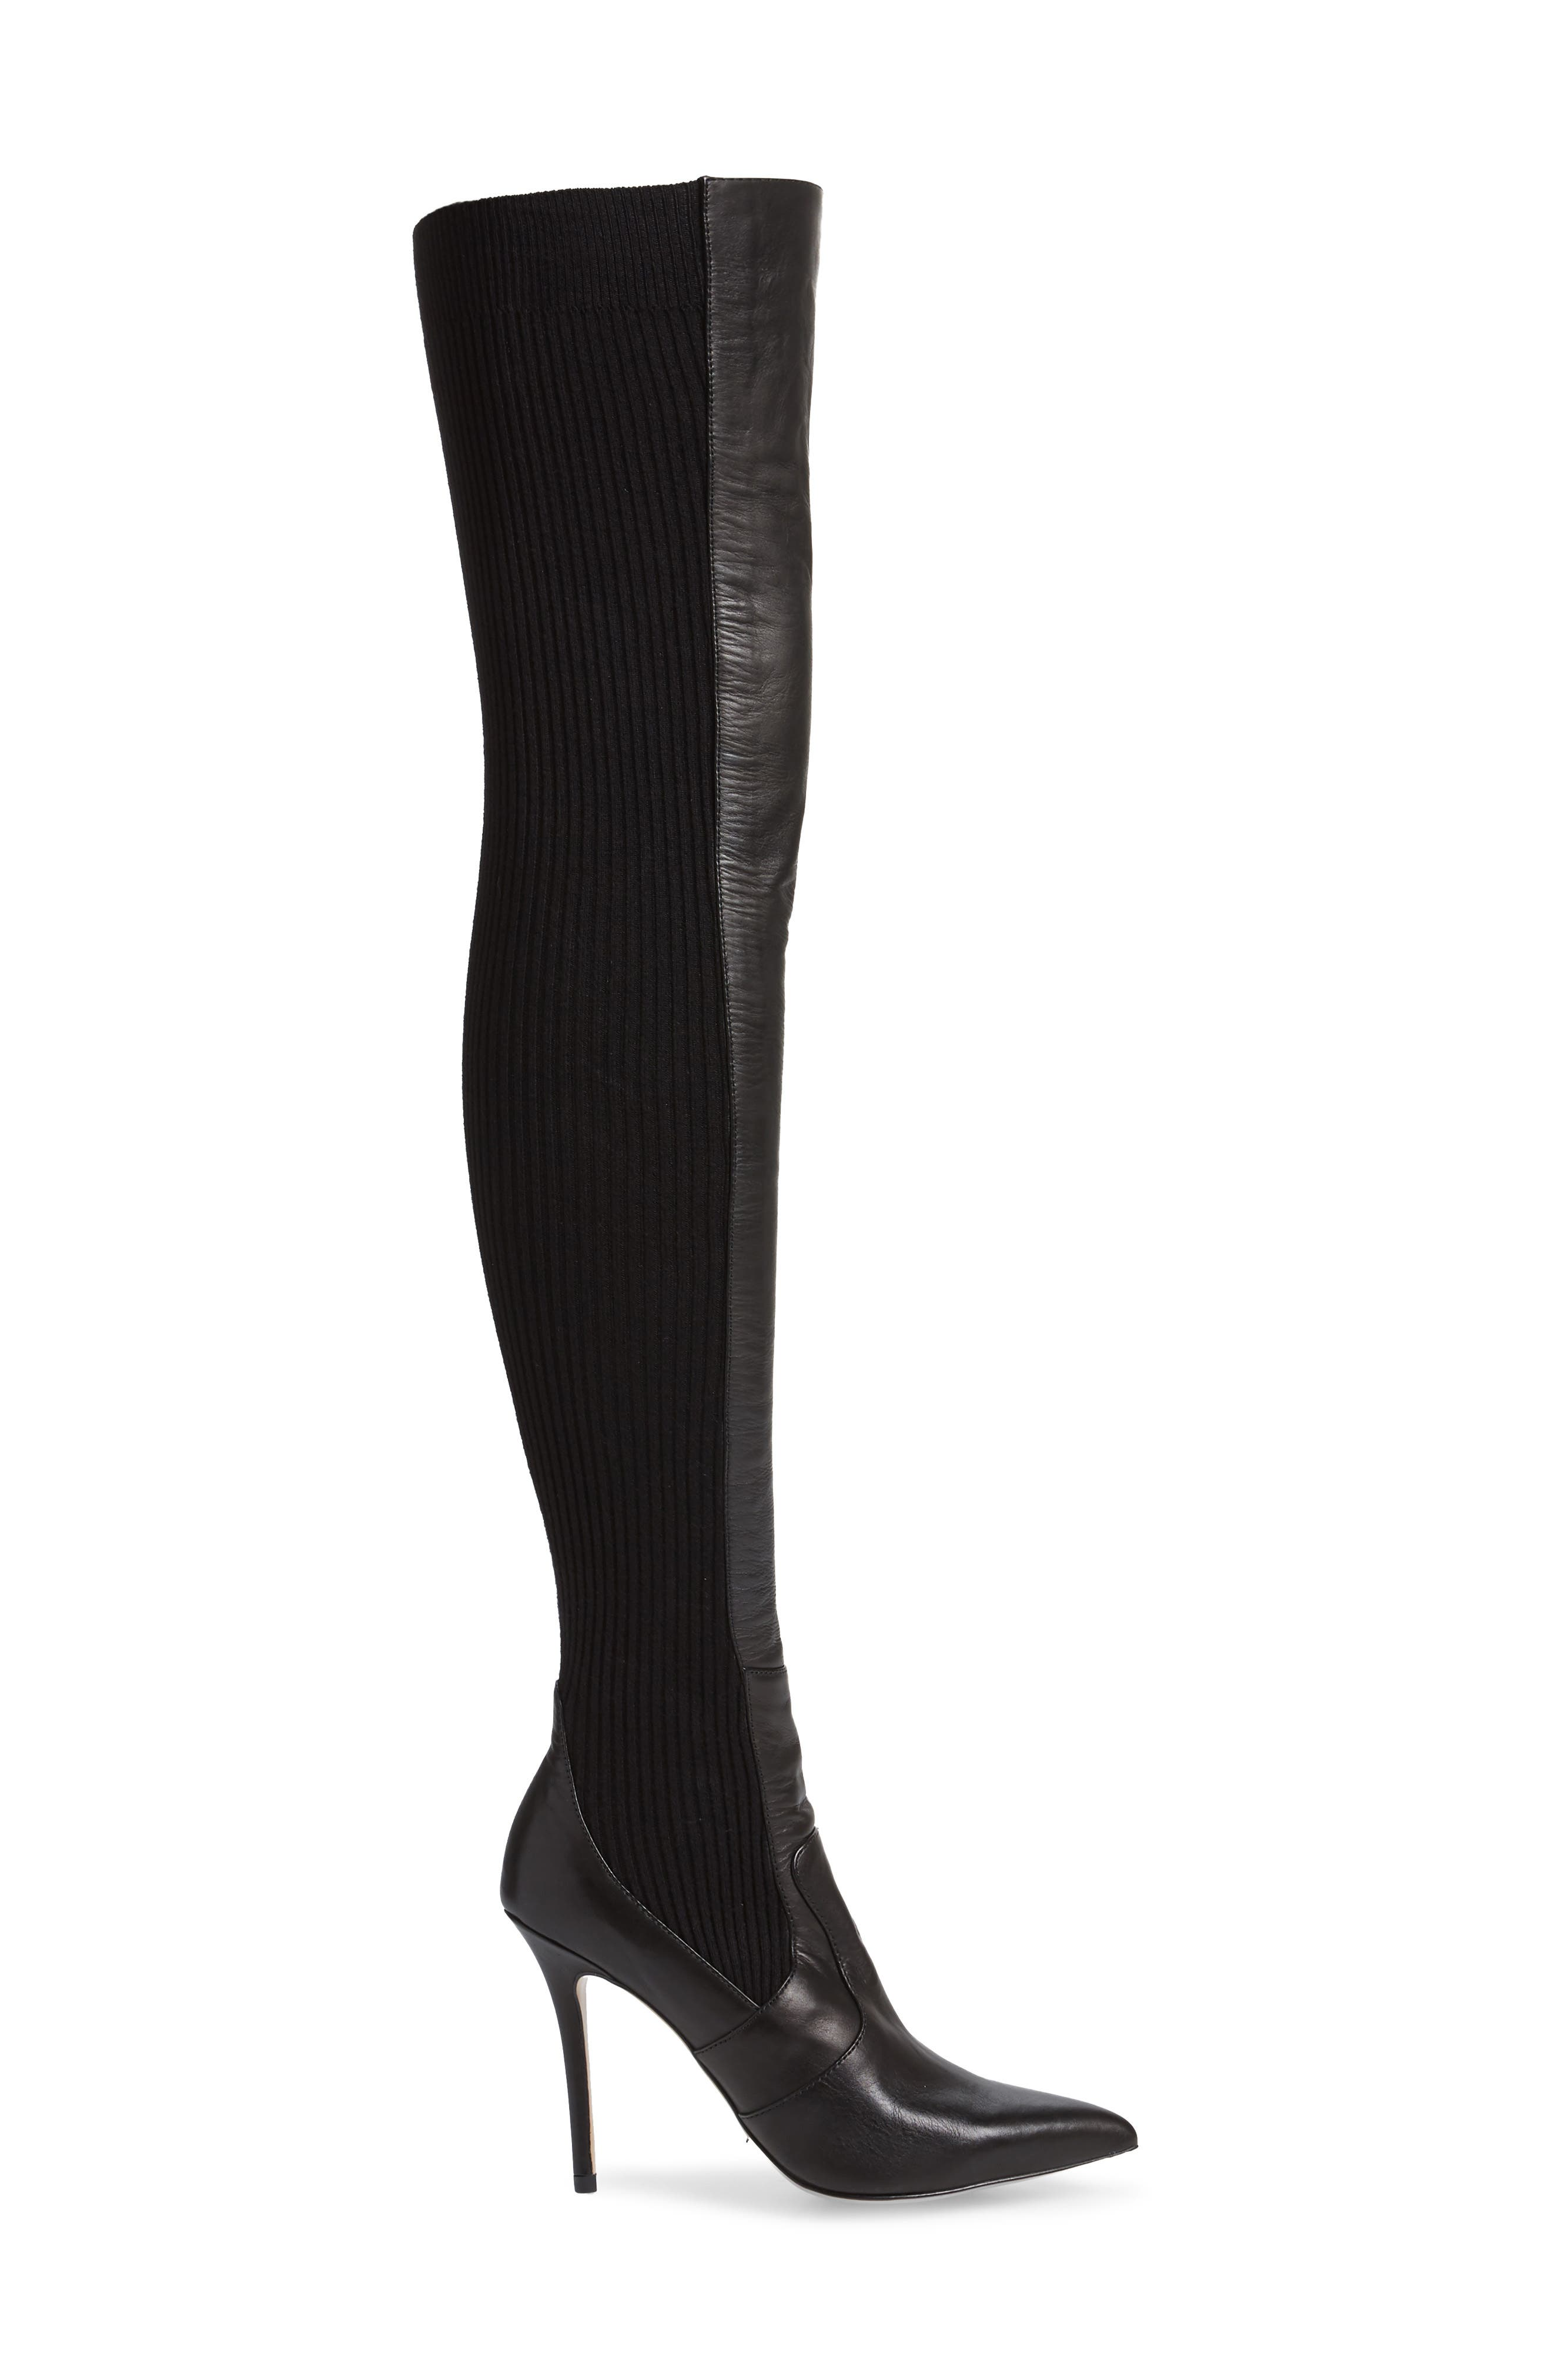 TONY BIANCO,                             Dahlia Over the Knee Boot,                             Alternate thumbnail 3, color,                             001